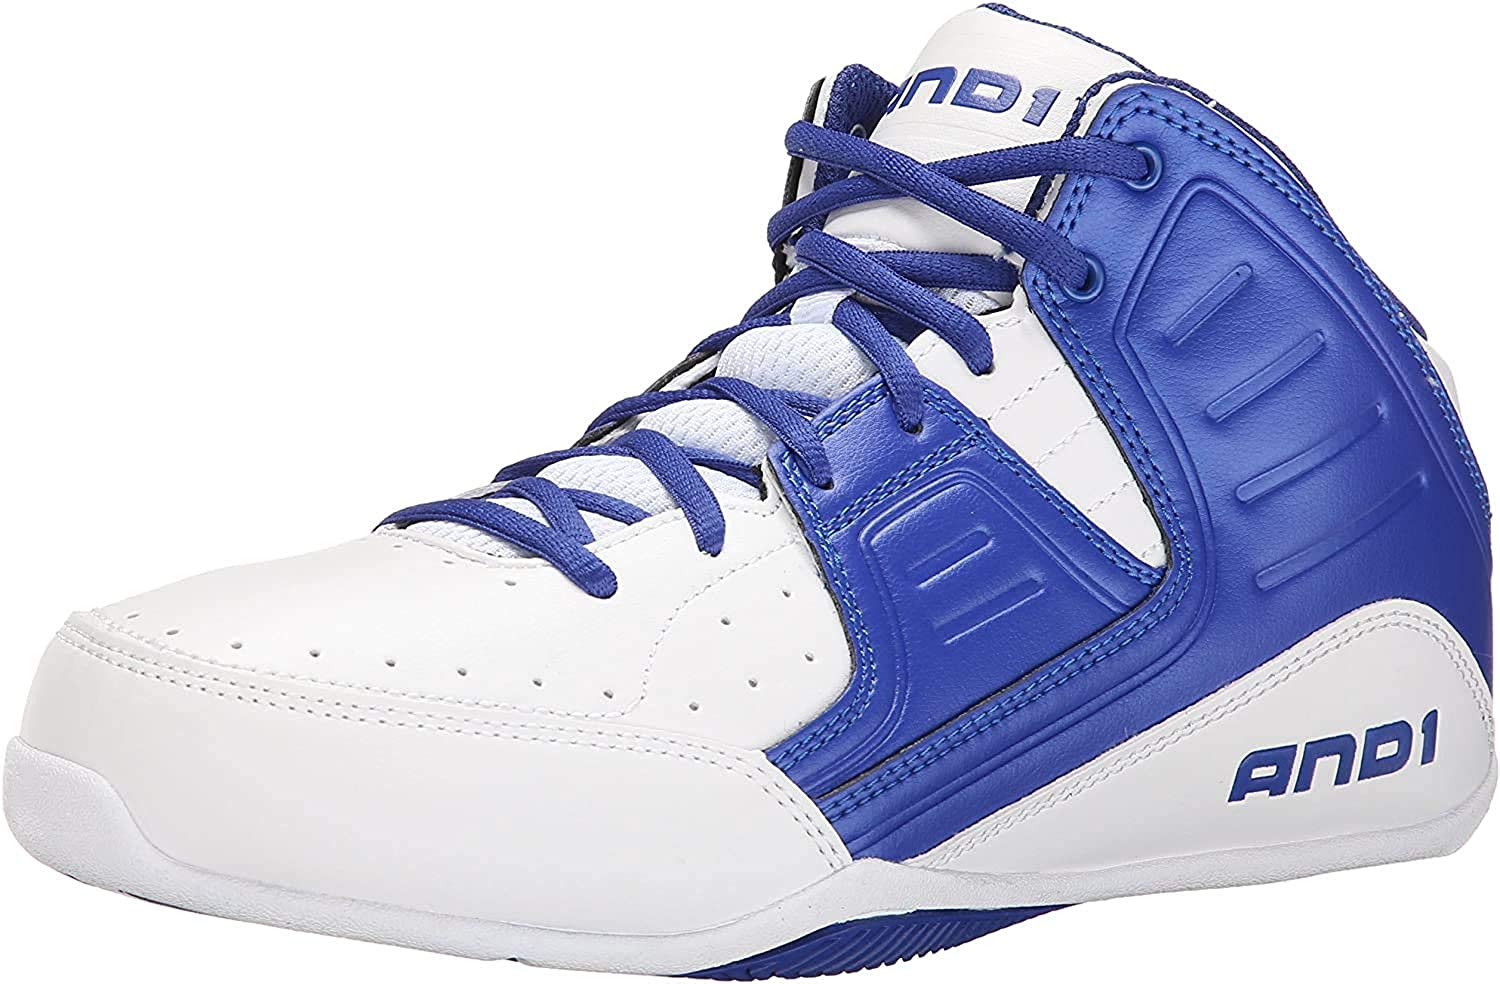 AND 1 Wholesale Men's Rocket Basketball Shoe OFFicial store 4.0